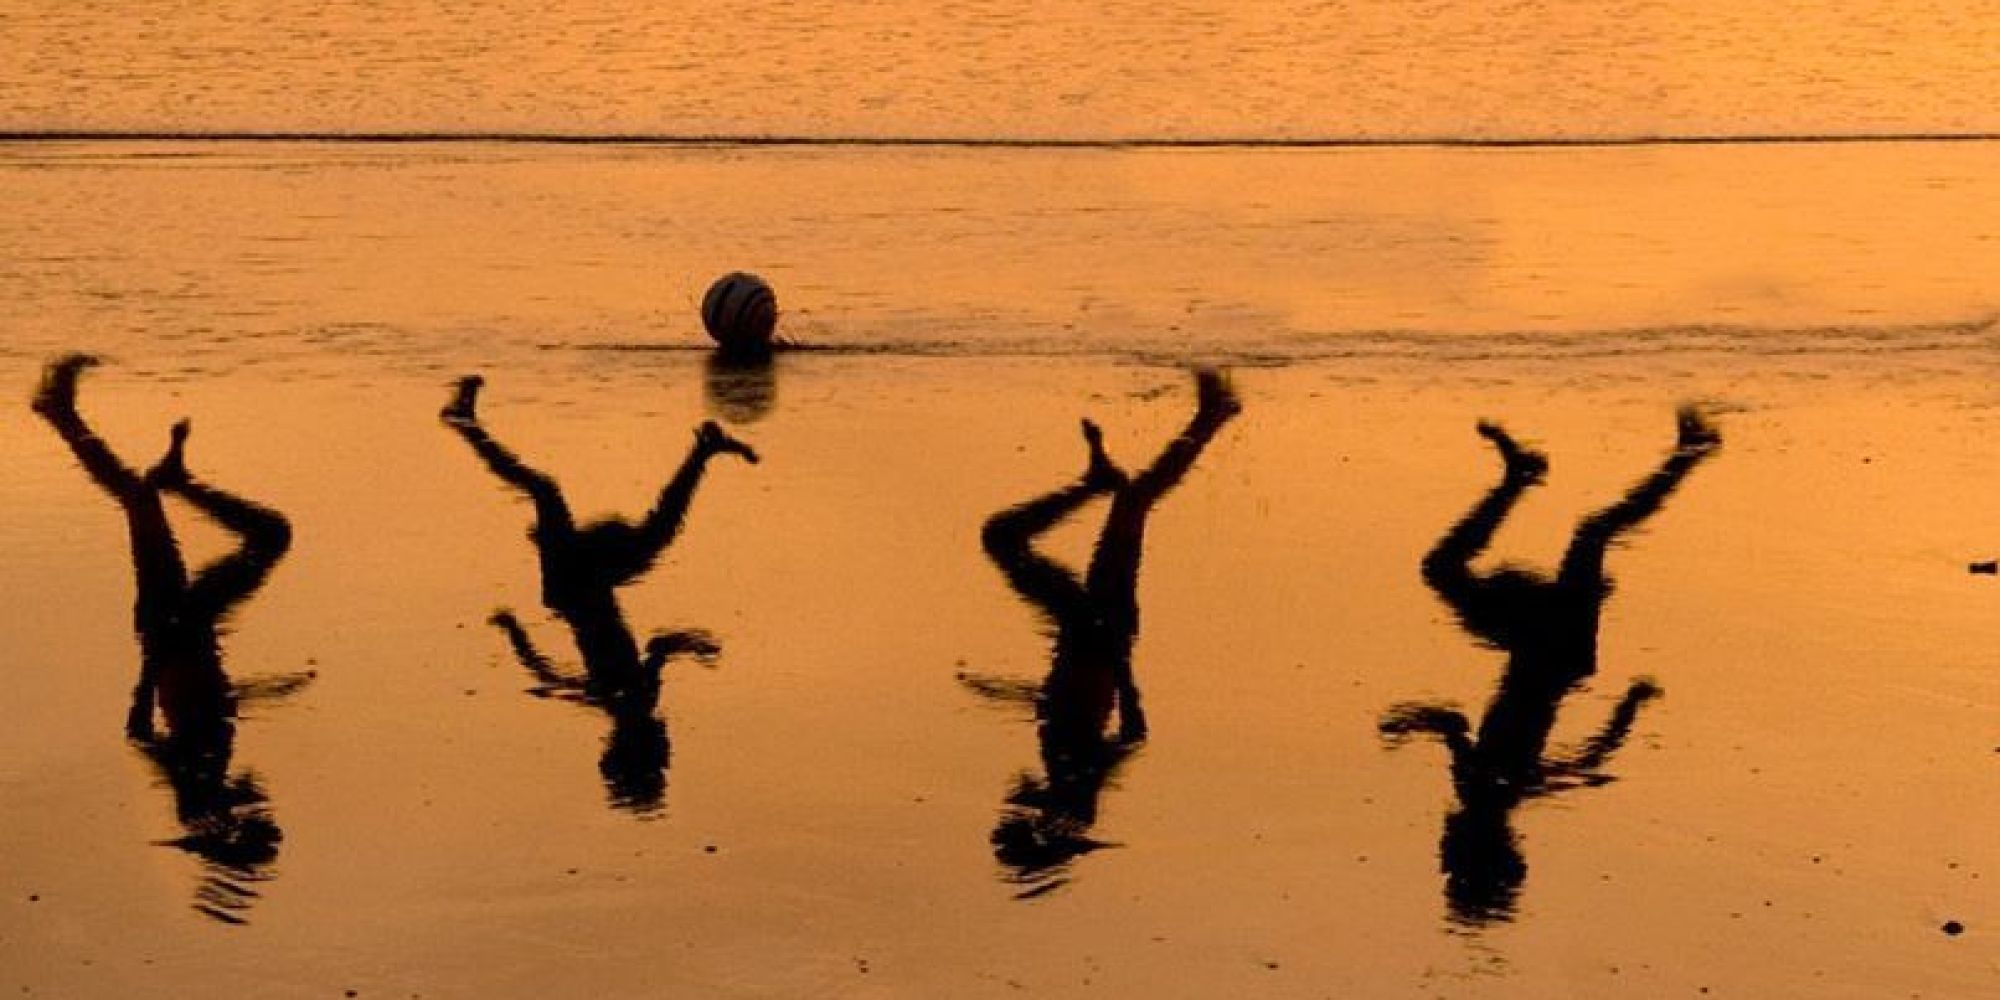 A tribute by Israeli artist Amir Schiby to the 4 children killed on a Gaza beach by an Israeli air strike while playing football